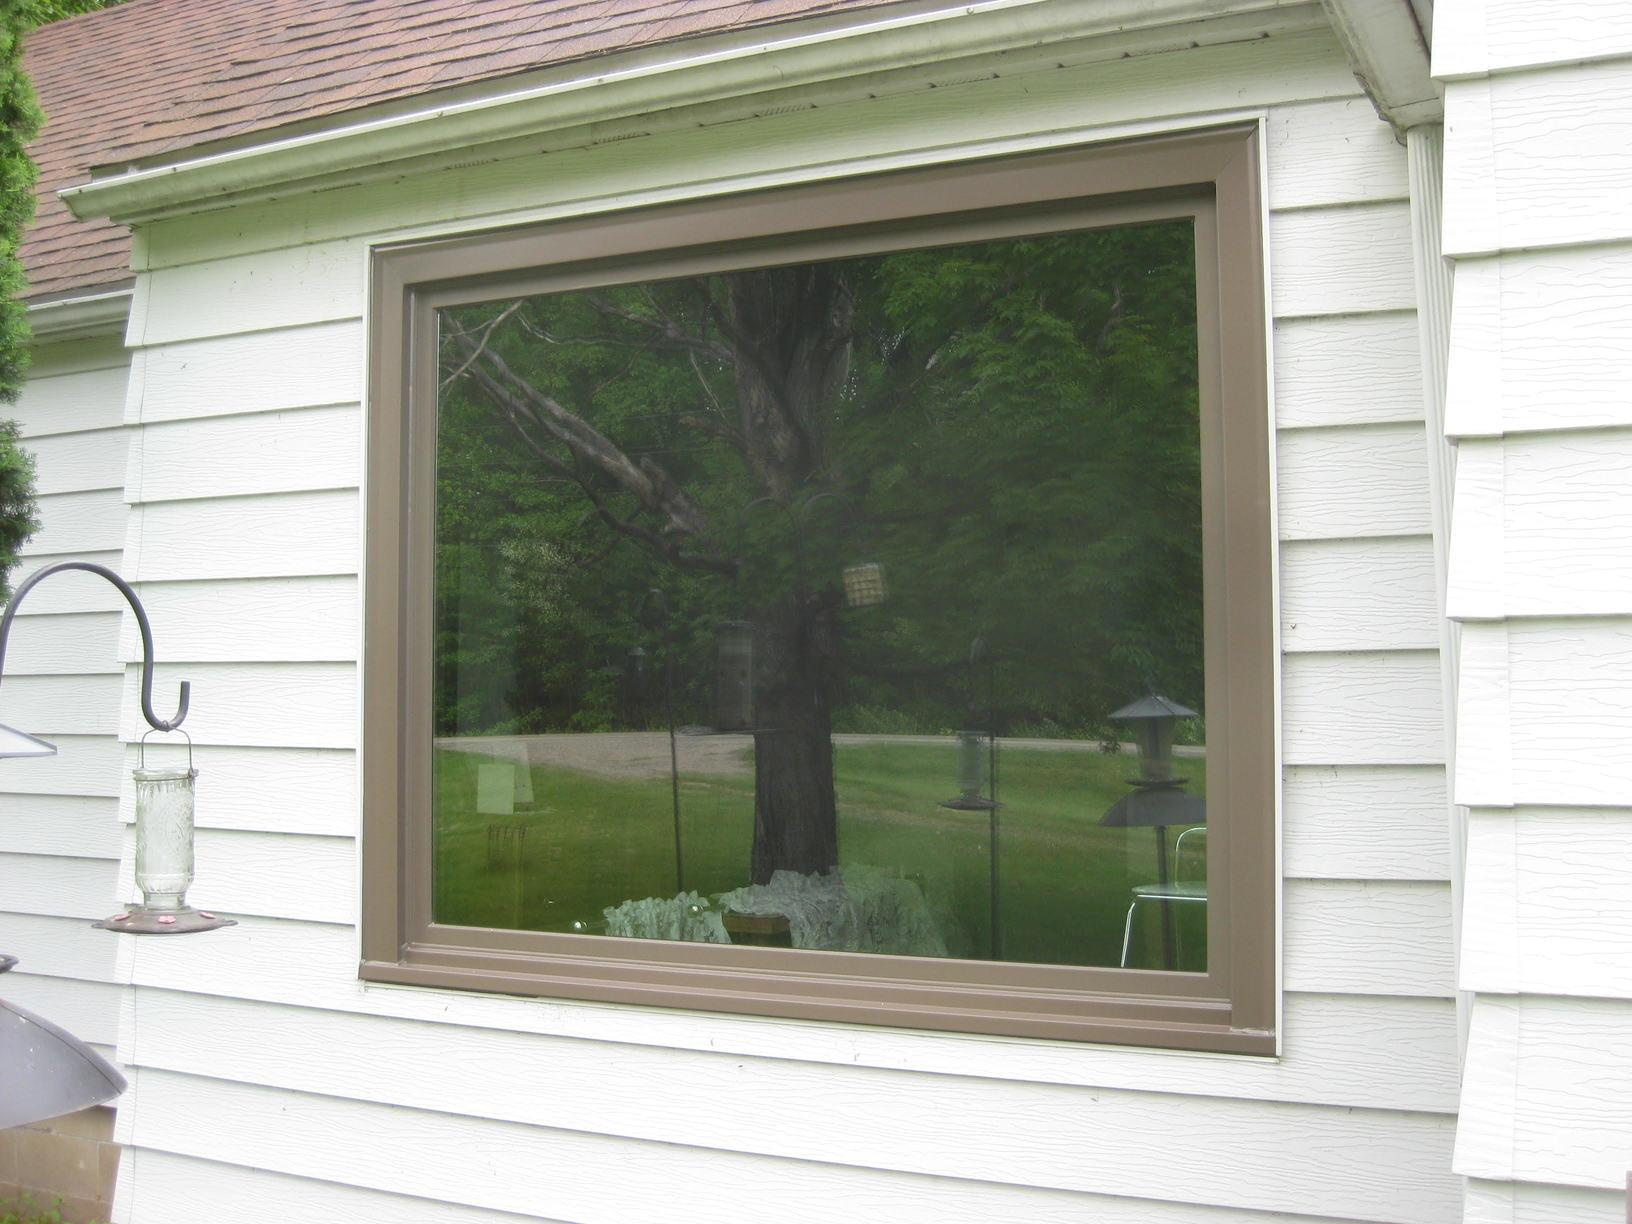 Beautiful new Casement window installed - After Photo